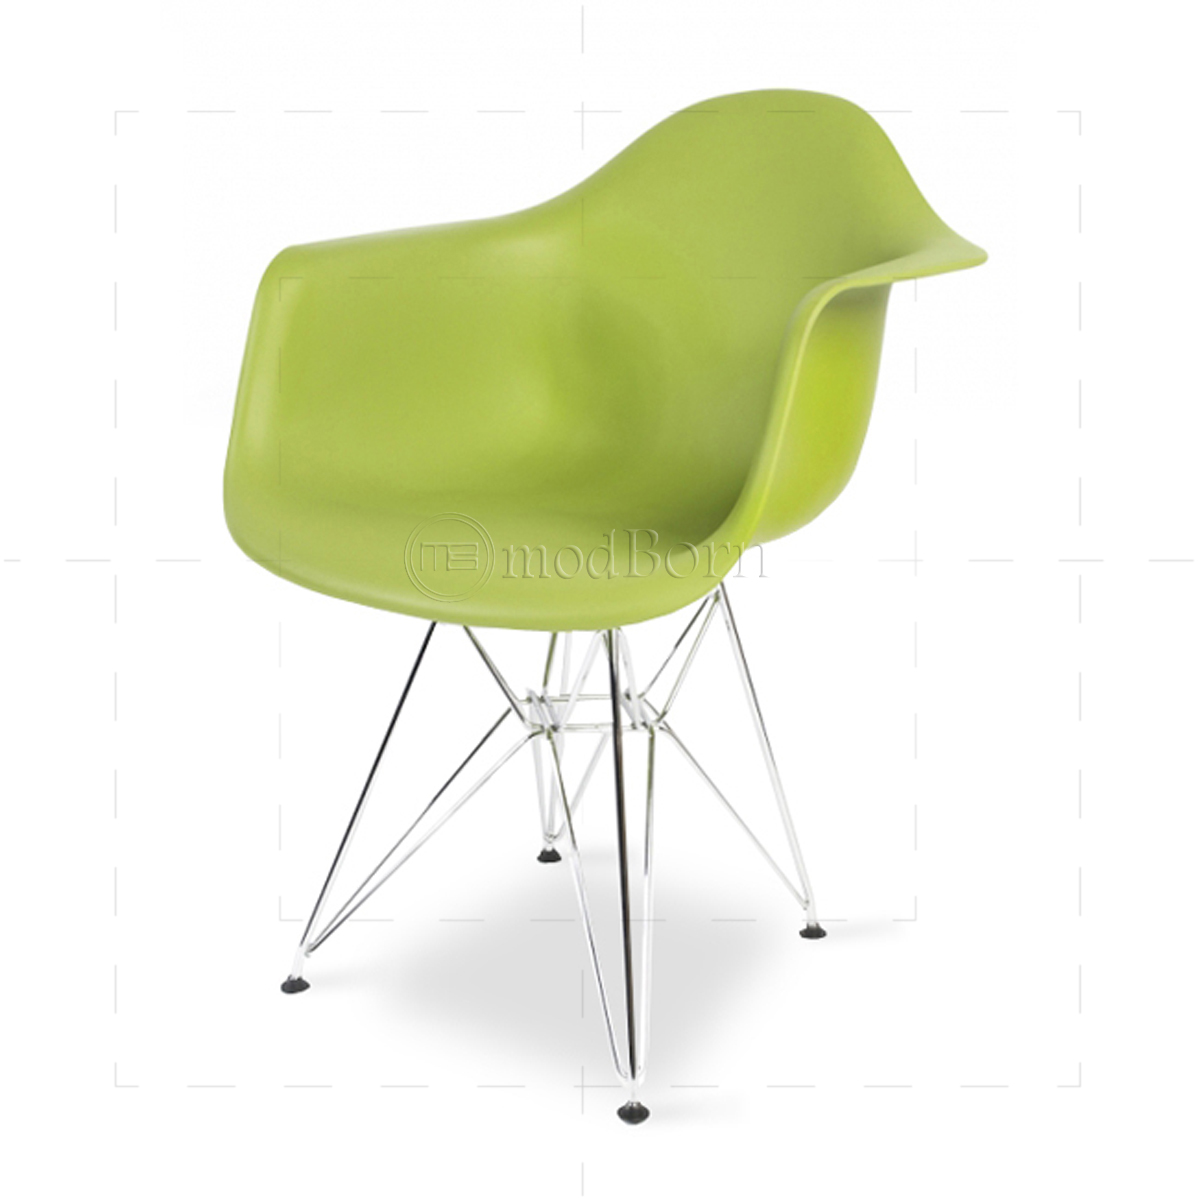 Eames Style Dining DAR Arm Chair Green : eamesdarchairgreen 1 1200x1200 from www.modborn.com size 1200 x 1200 jpeg 303kB